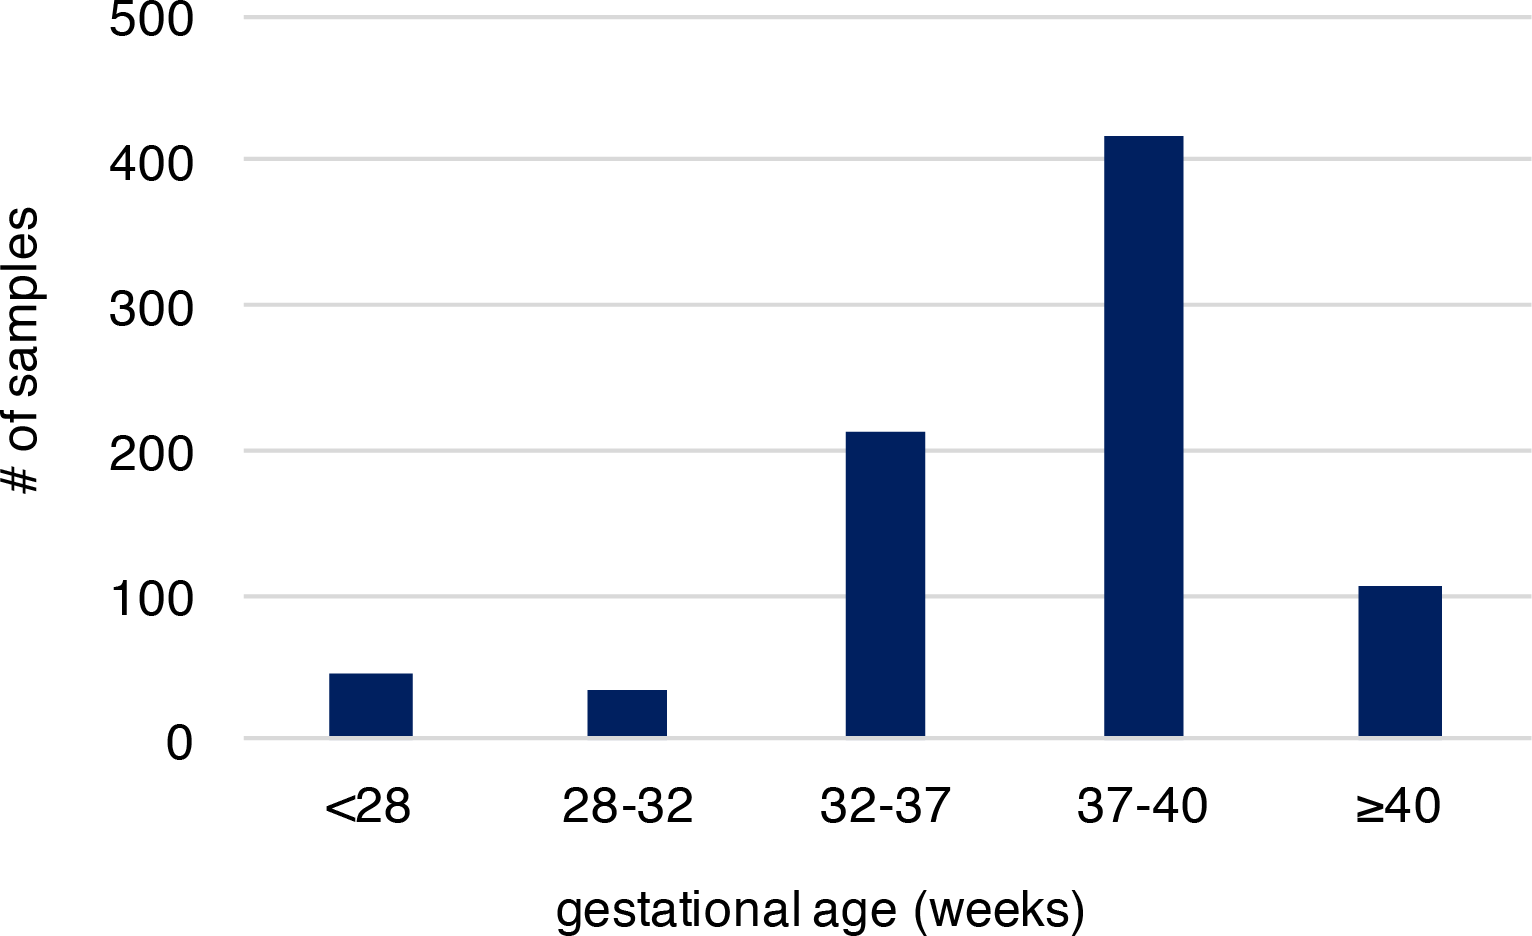 The gestational age distribution of the study participants.